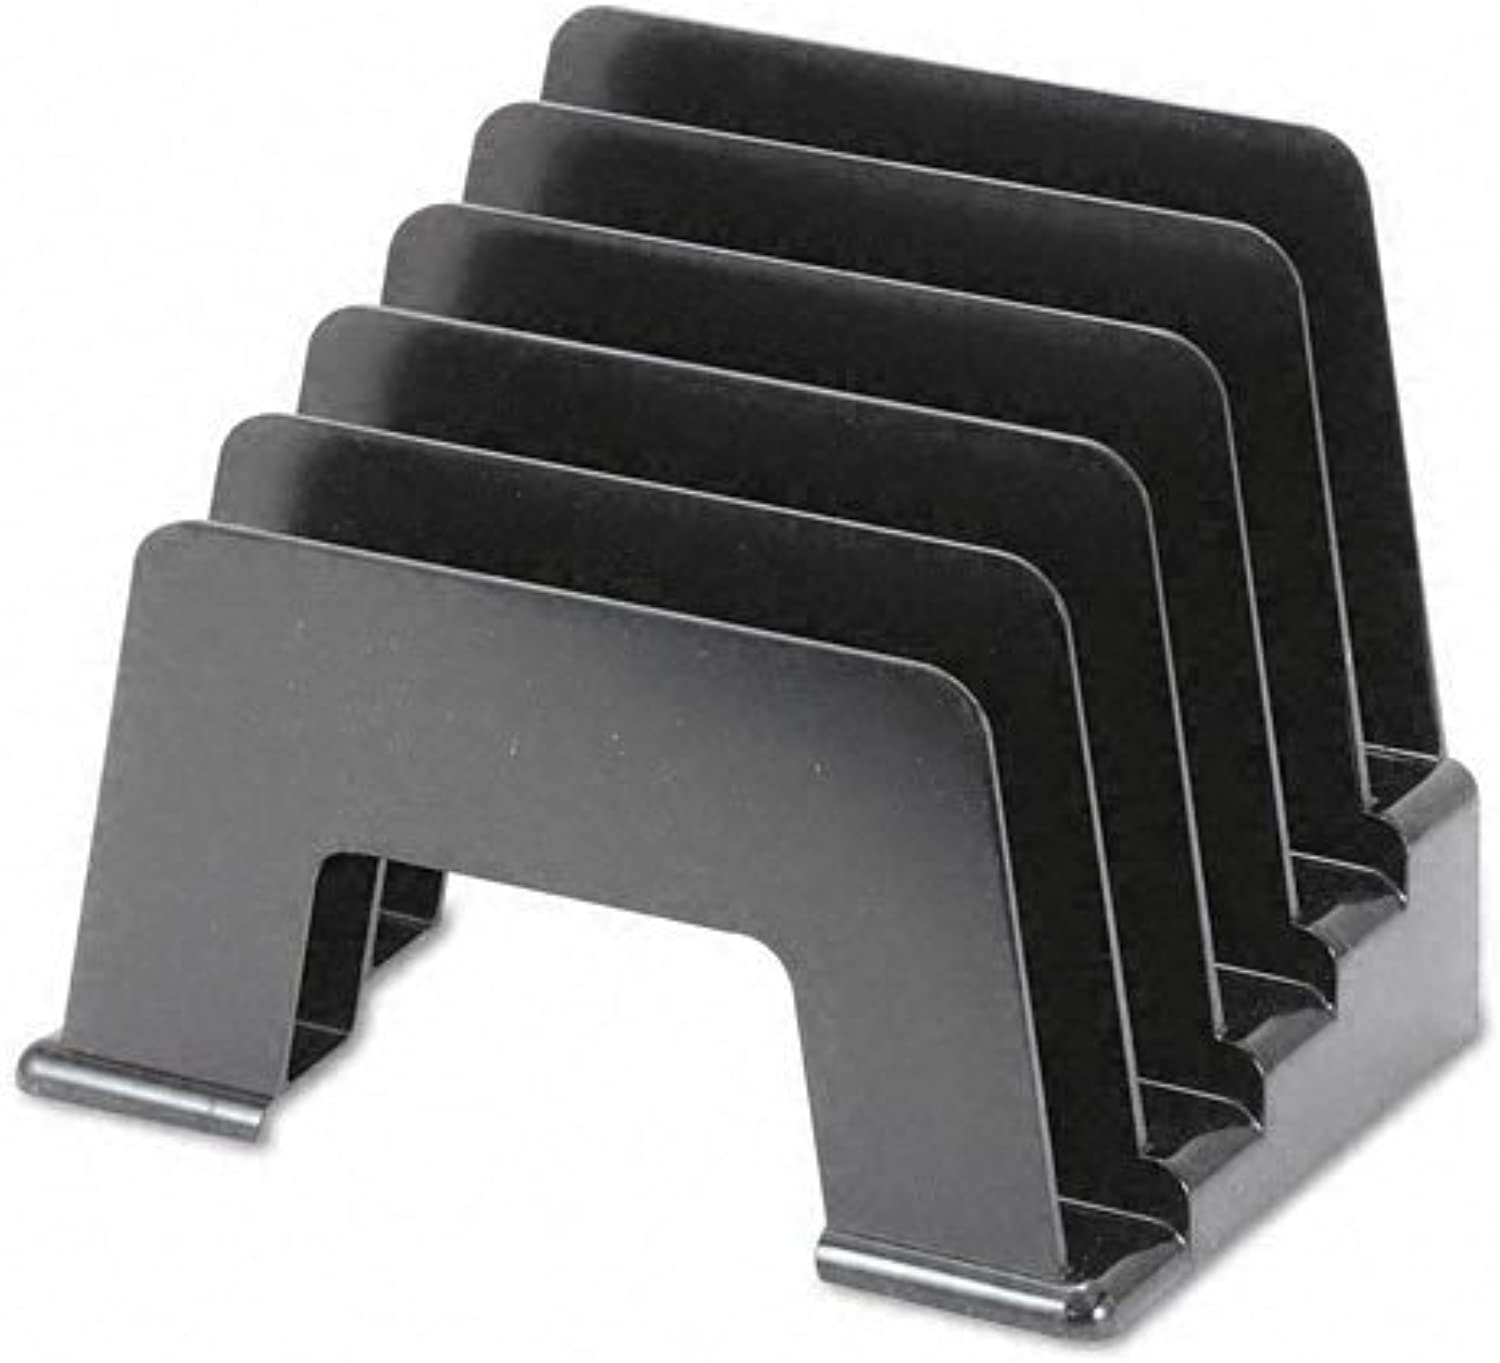 Universal - Incline Sorter, Five Sections, Plastic, 8W X 5 1 2D 6H, Black Pack Of 15